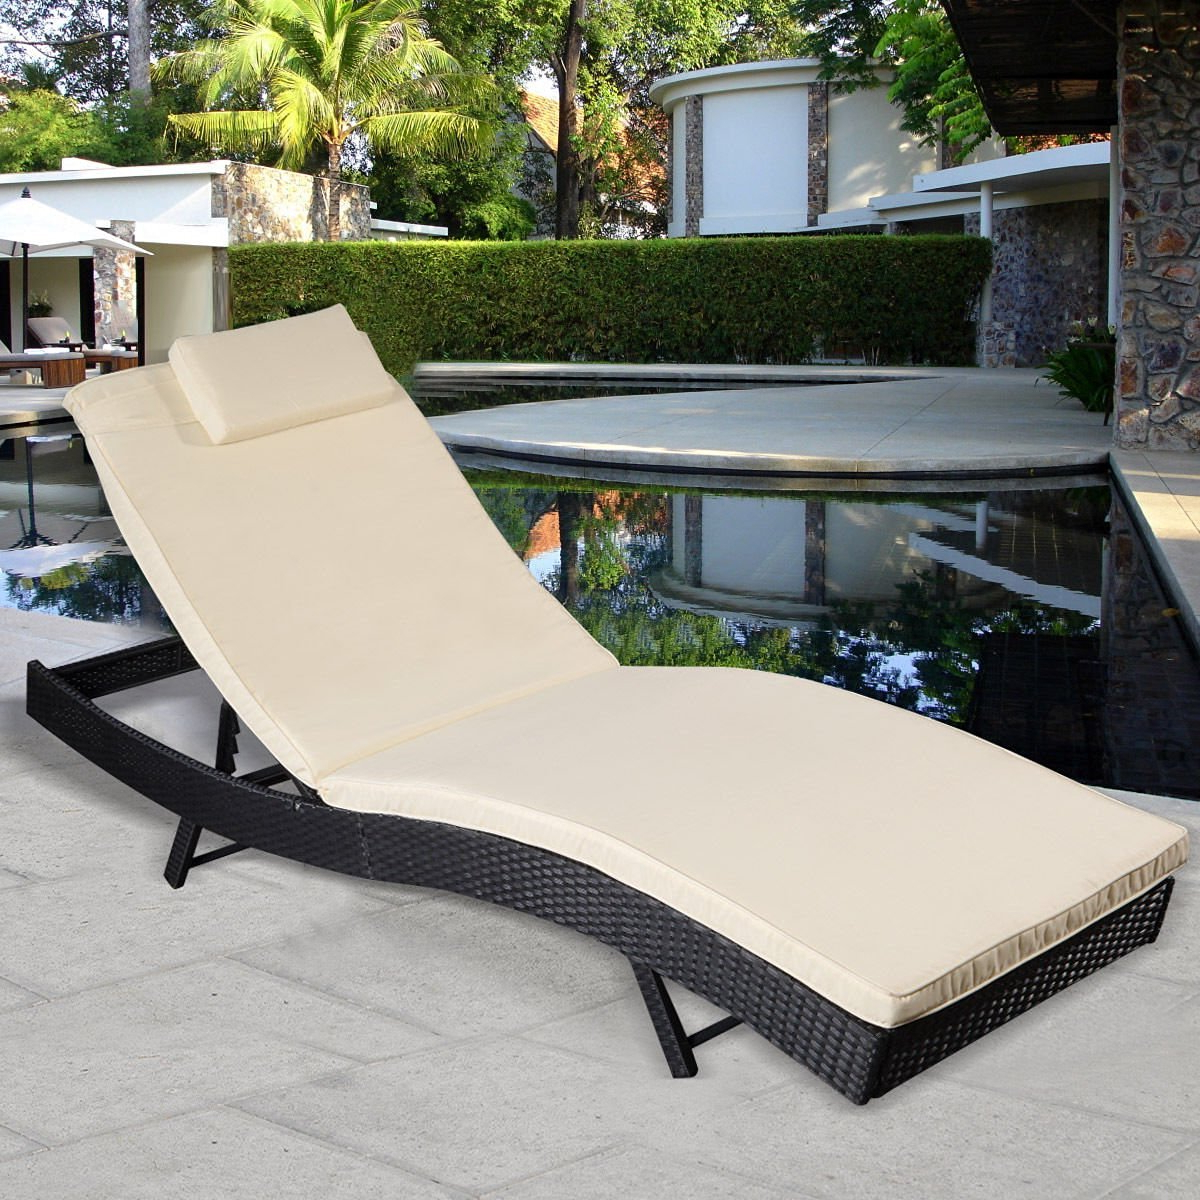 Cheap Lounge Pool Furniture, Find Lounge Pool Furniture Pertaining To Most Recent Outdoor Adjustable Rattan Wicker Chaise Pool Chairs With Cushions (View 15 of 25)